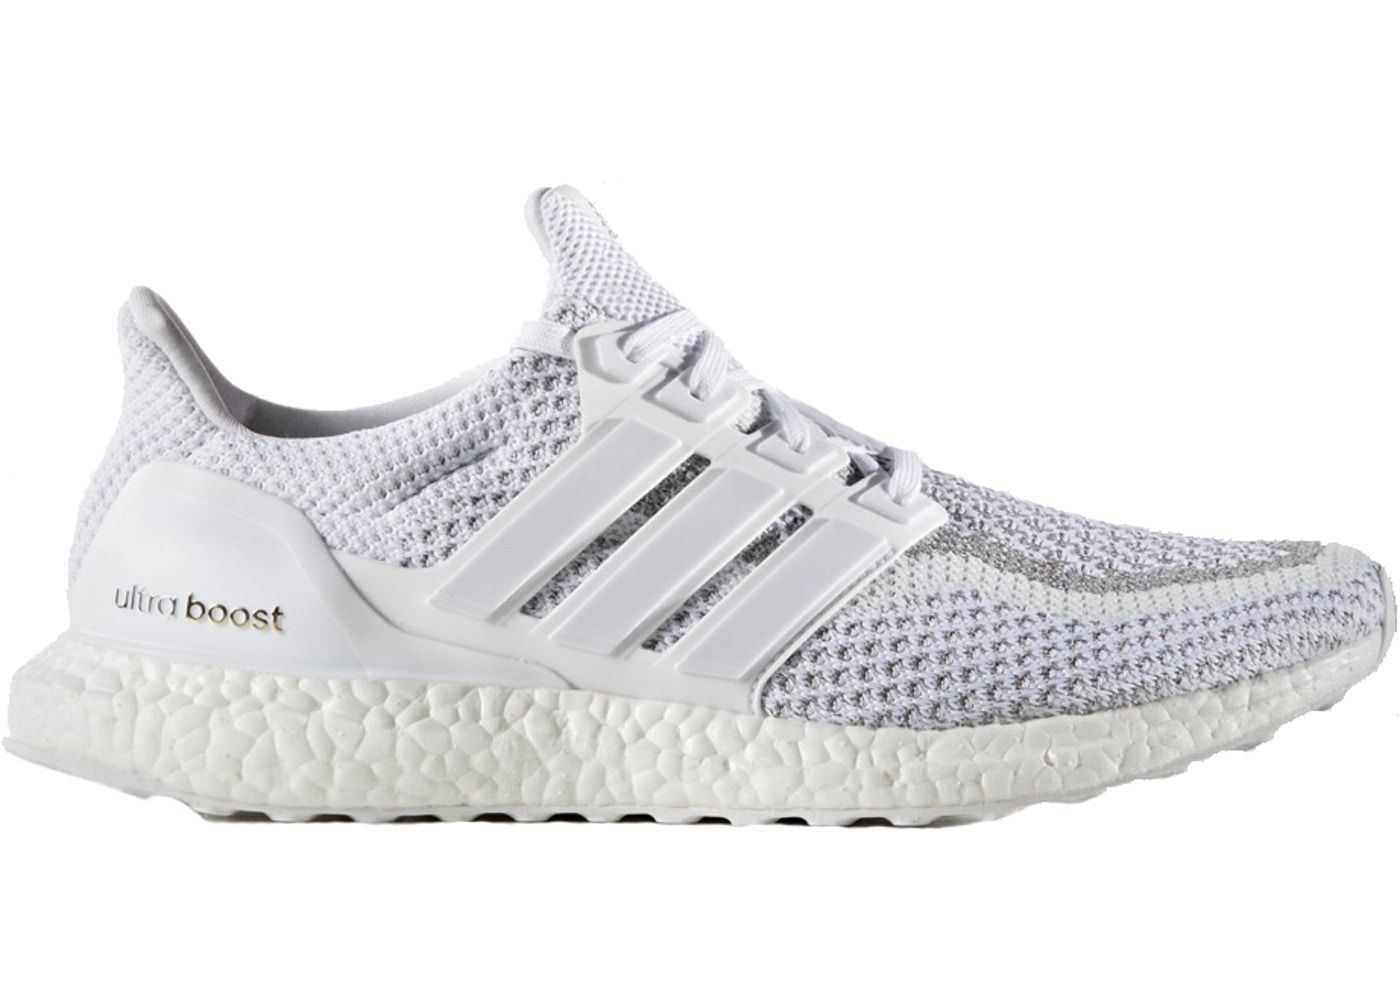 445a1cb4 Check out the adidas Ultra Boost 2.0 White Reflective available on StockX